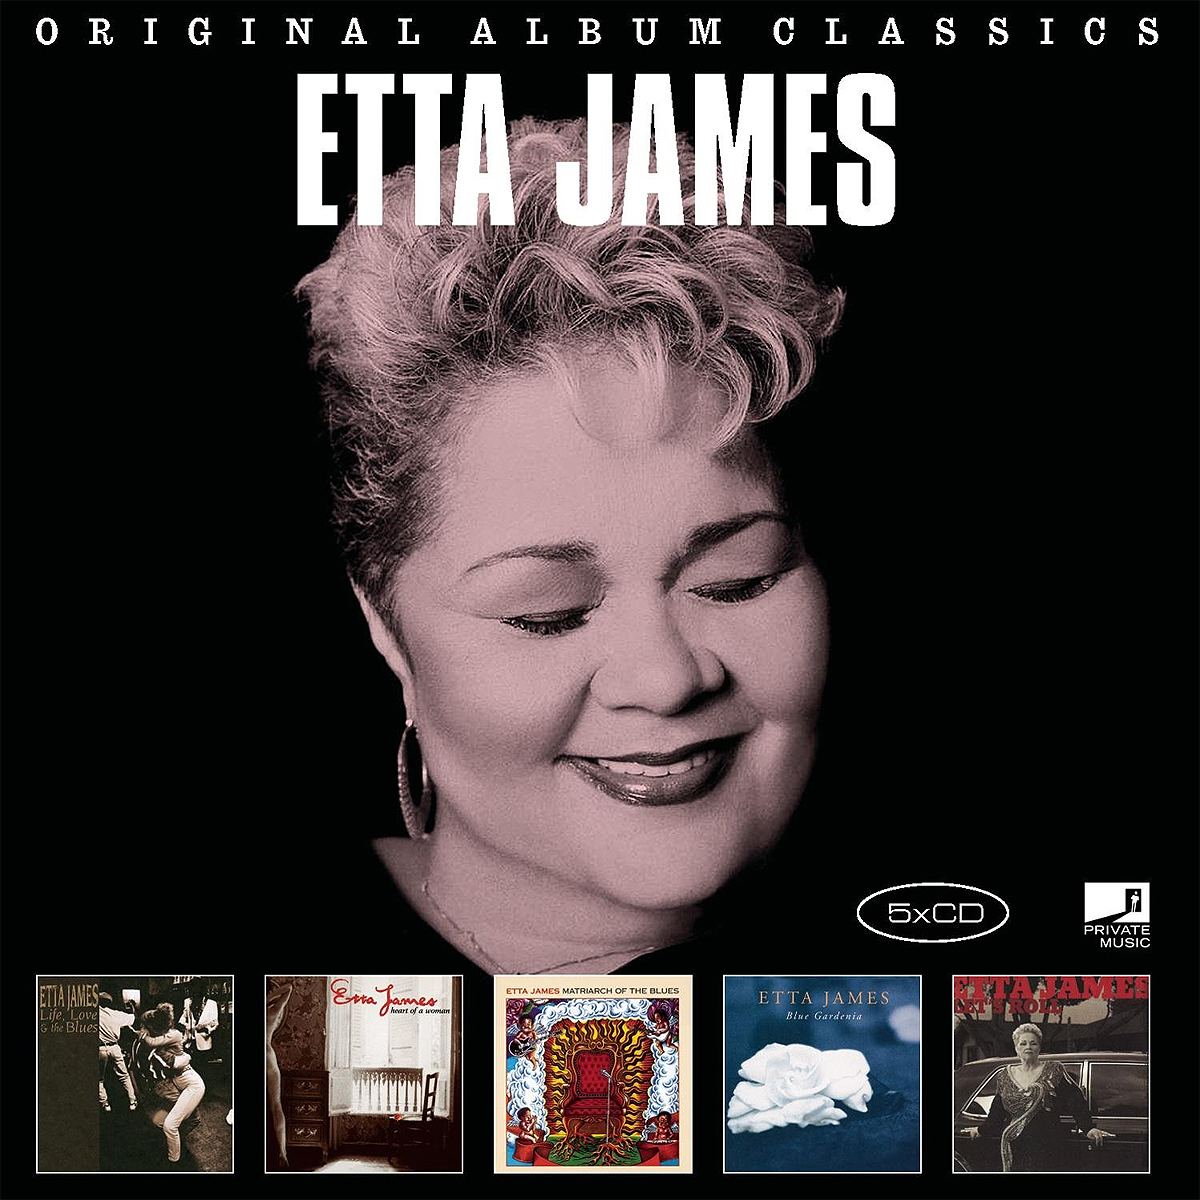 Этта Джеймс Etta James. Original Album Classics (5 CD) cathy glass will you love me the story of my adopted daughter lucy part 3 of 3